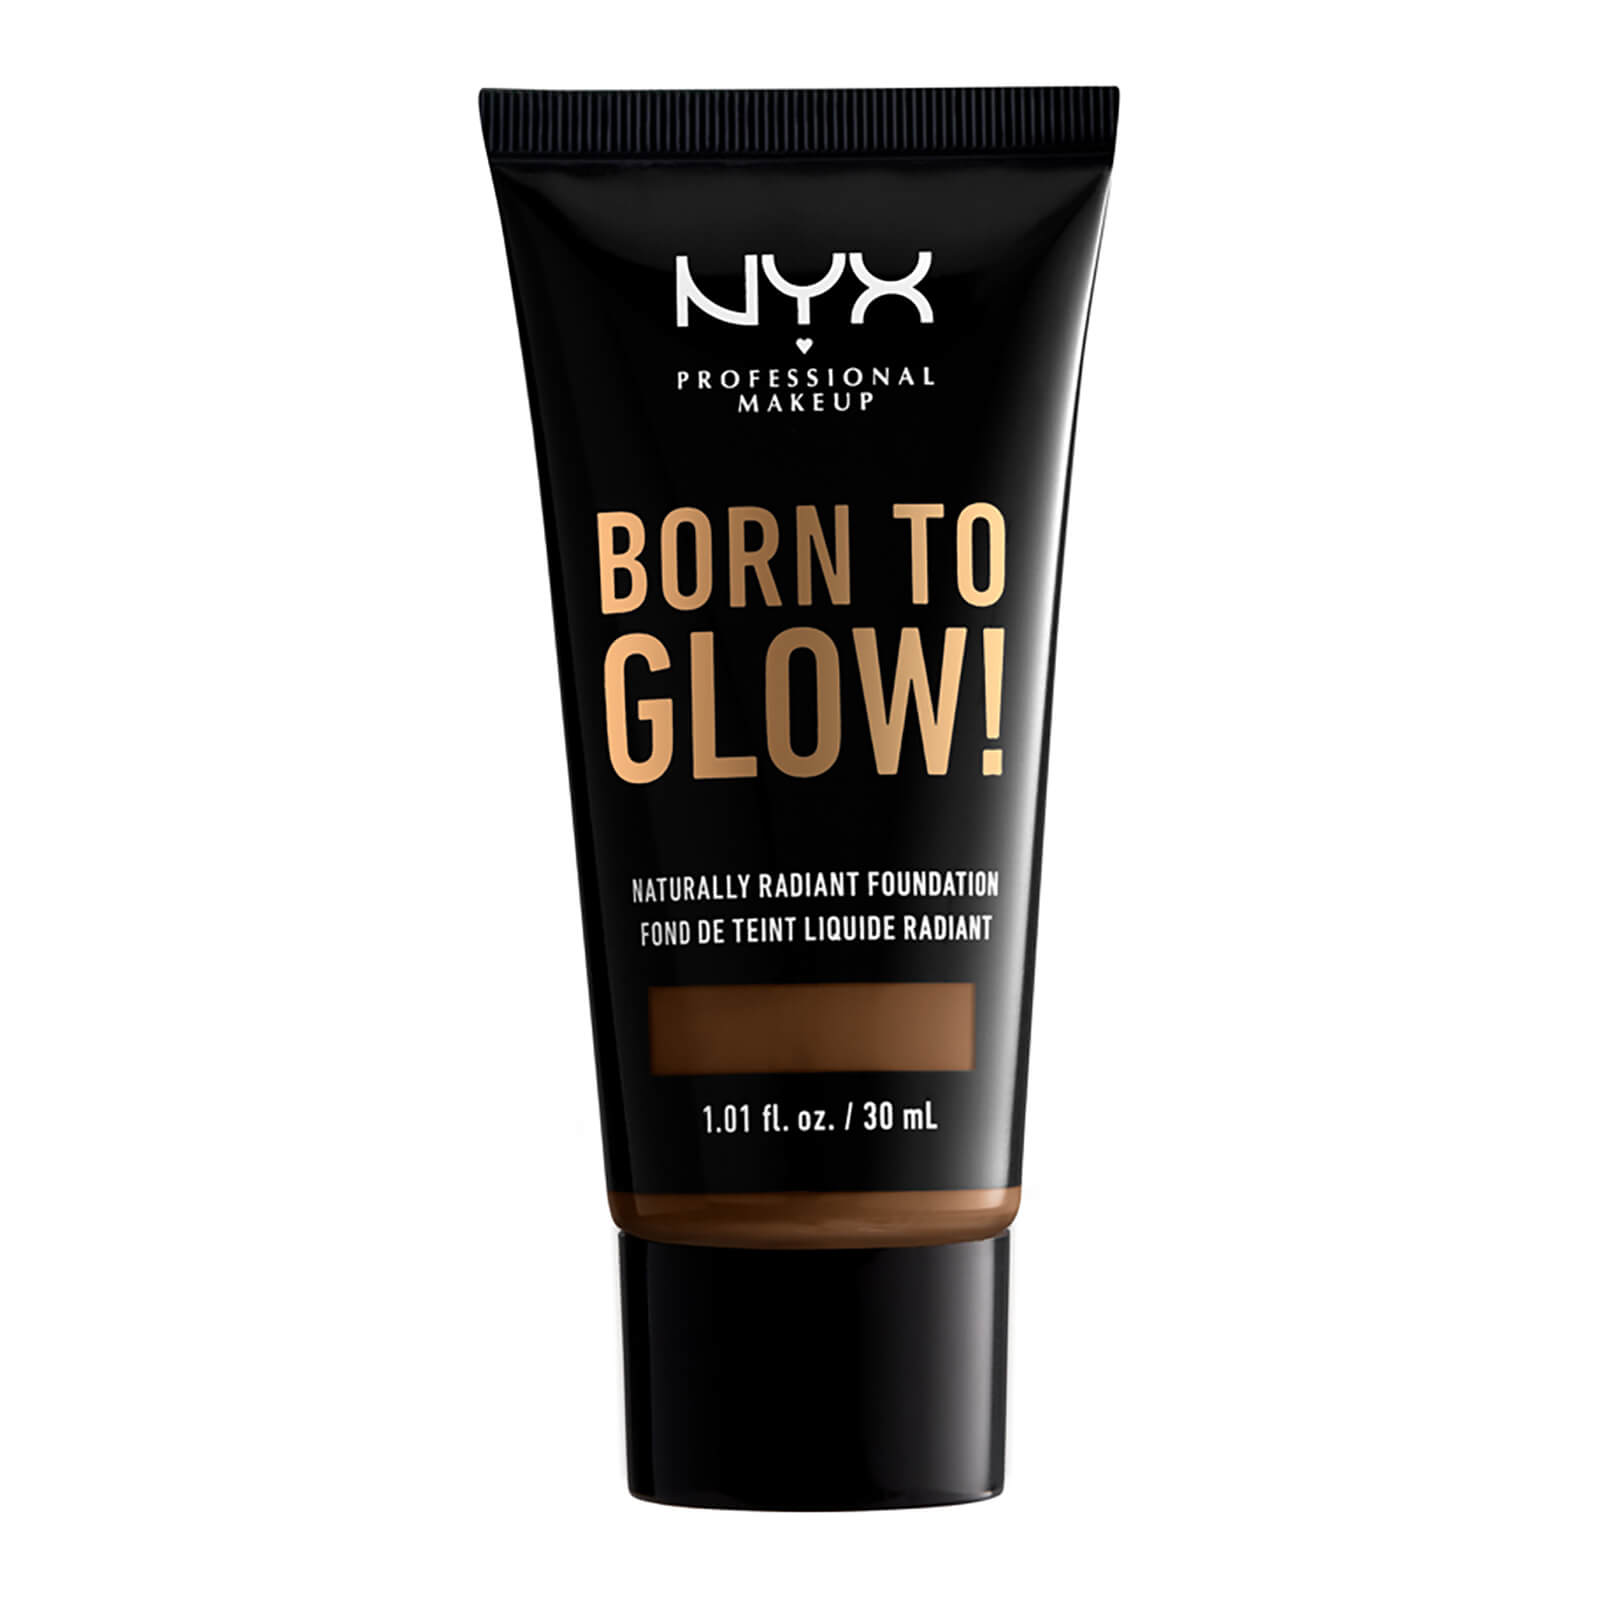 nyx professional makeup born to glow naturally radiant foundation 30ml (various shades) - cocoa